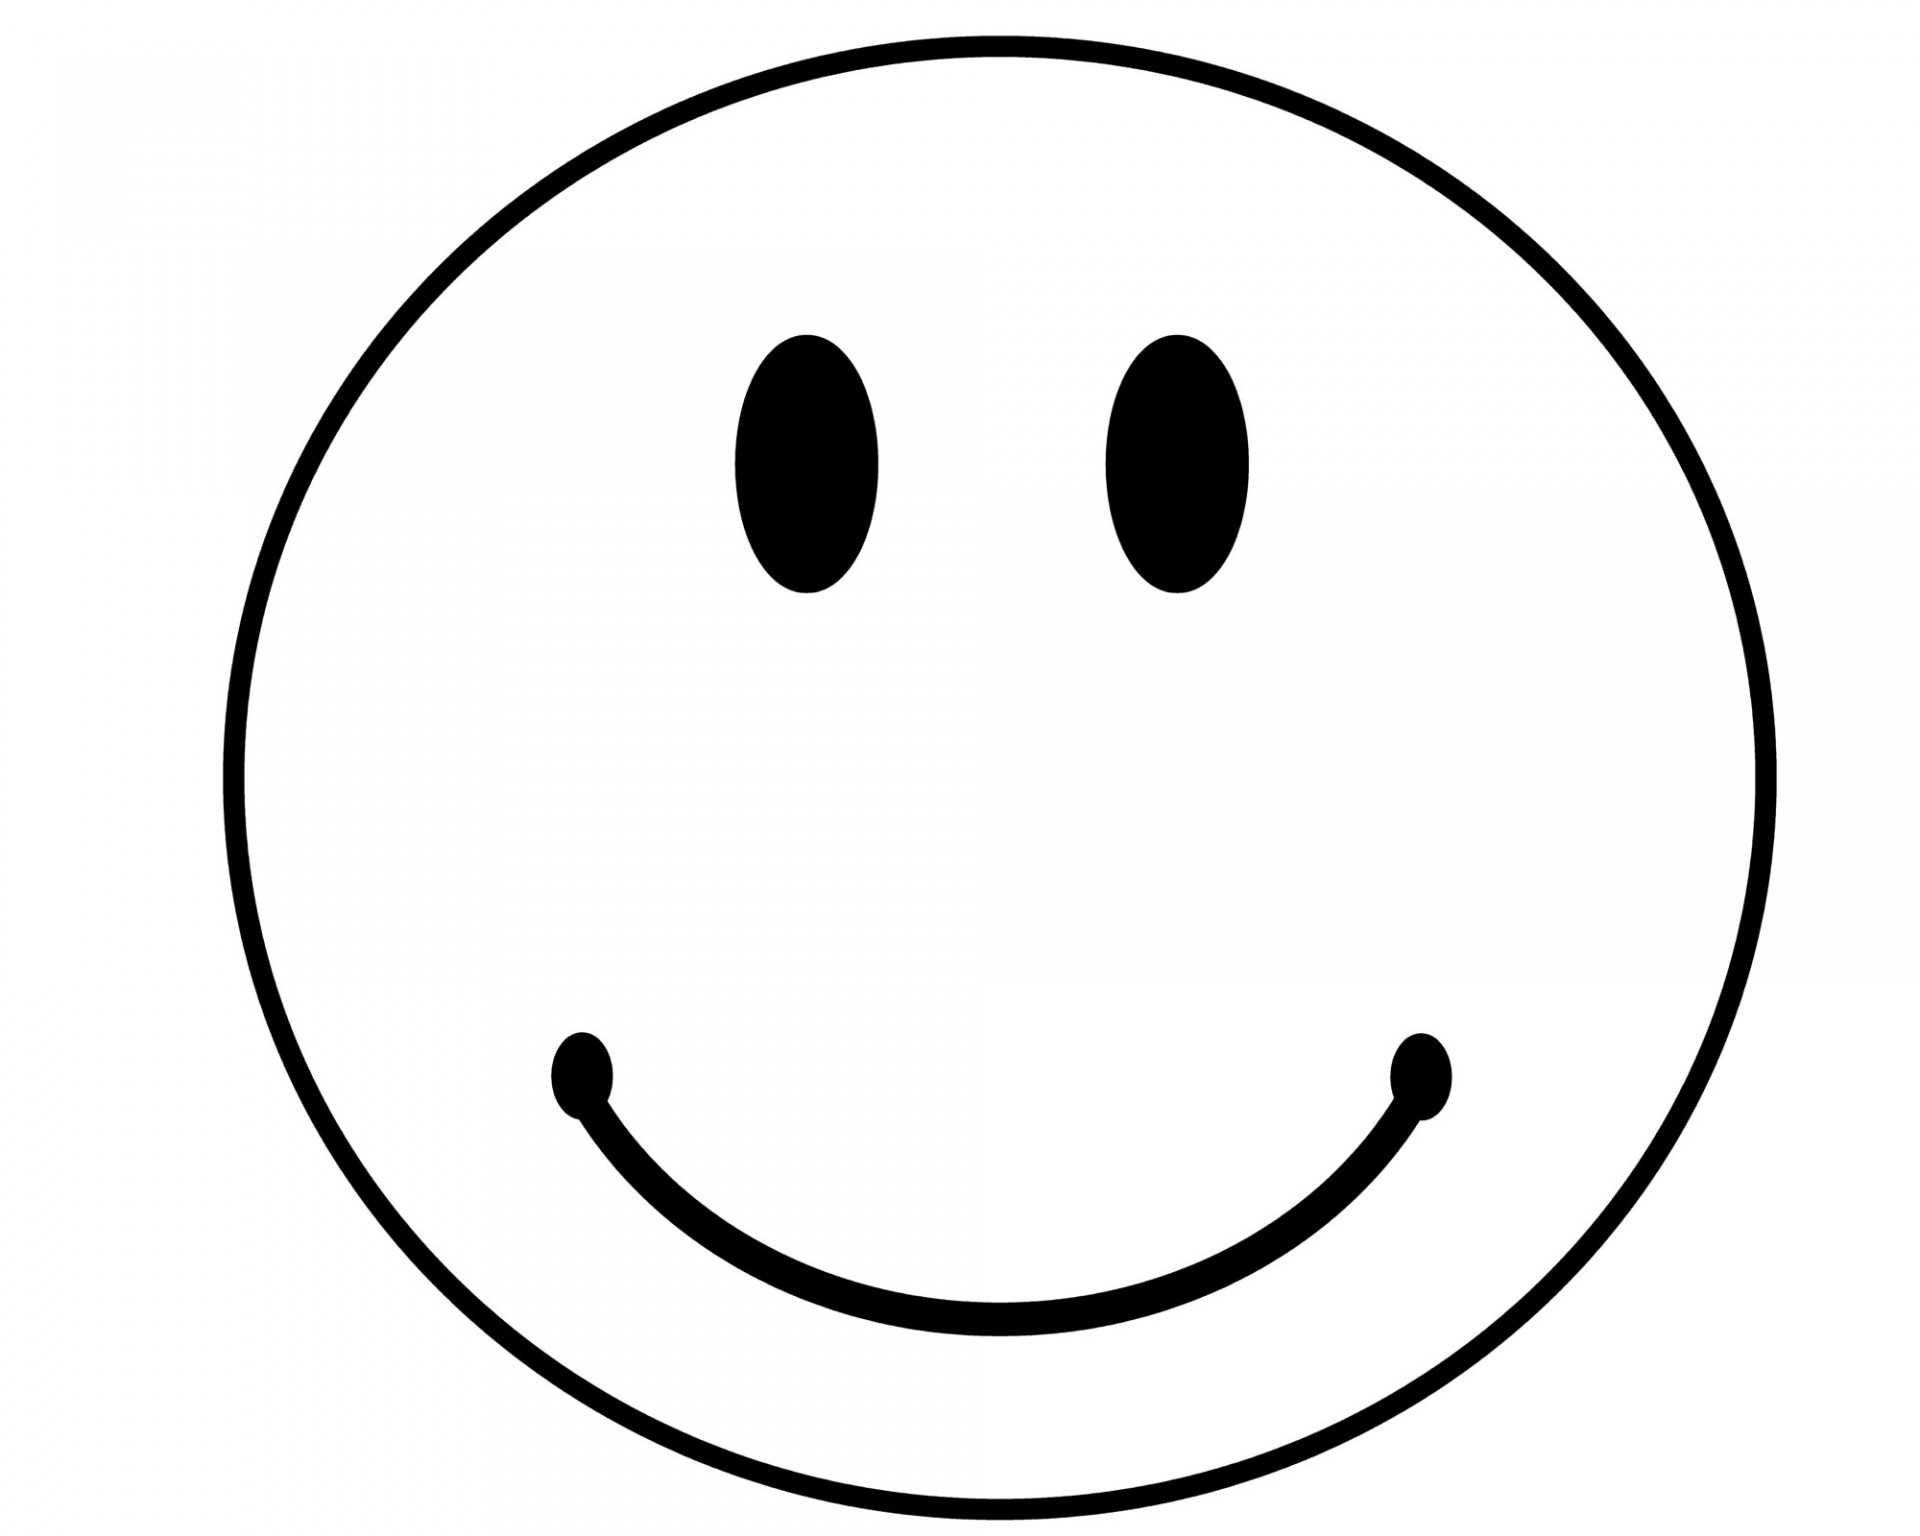 1920x1536 Smiley Face Thumbs Up Cartoon Images Wallpaper Hd For Pc Thank You